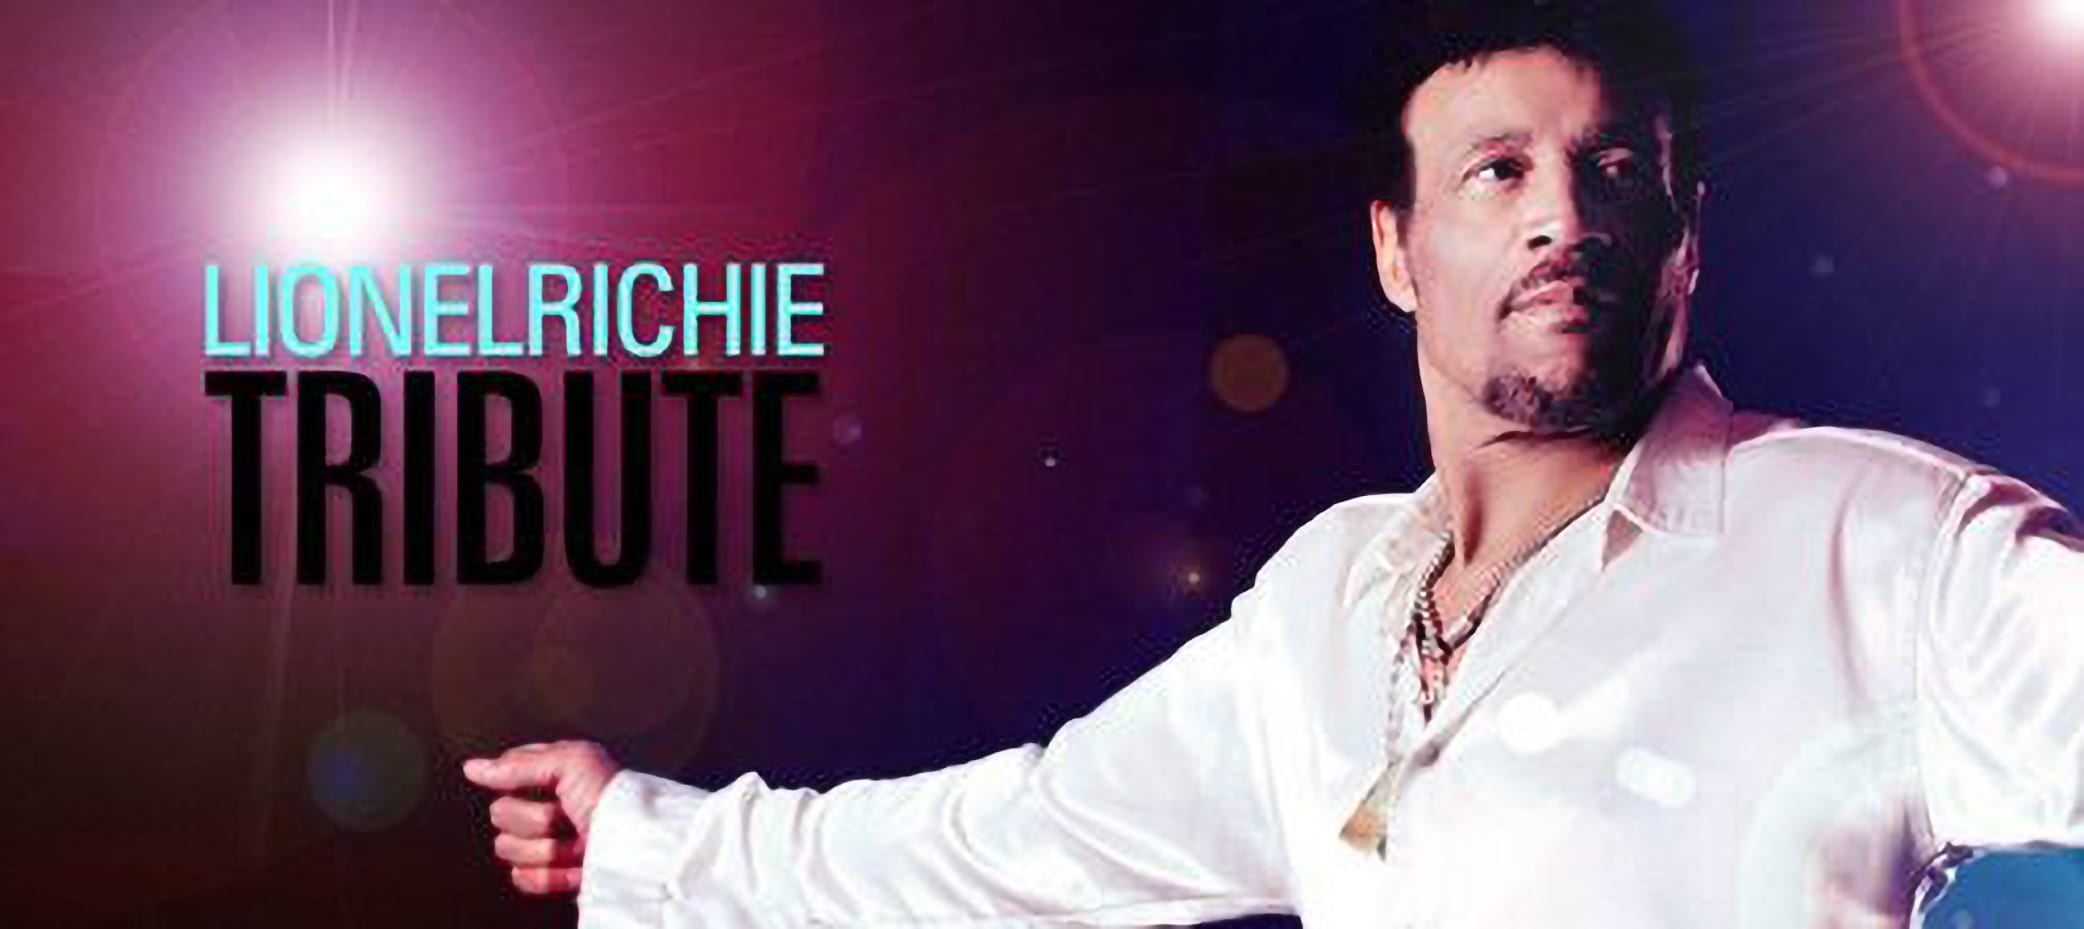 Lionel Richie Tribute Night Leicester